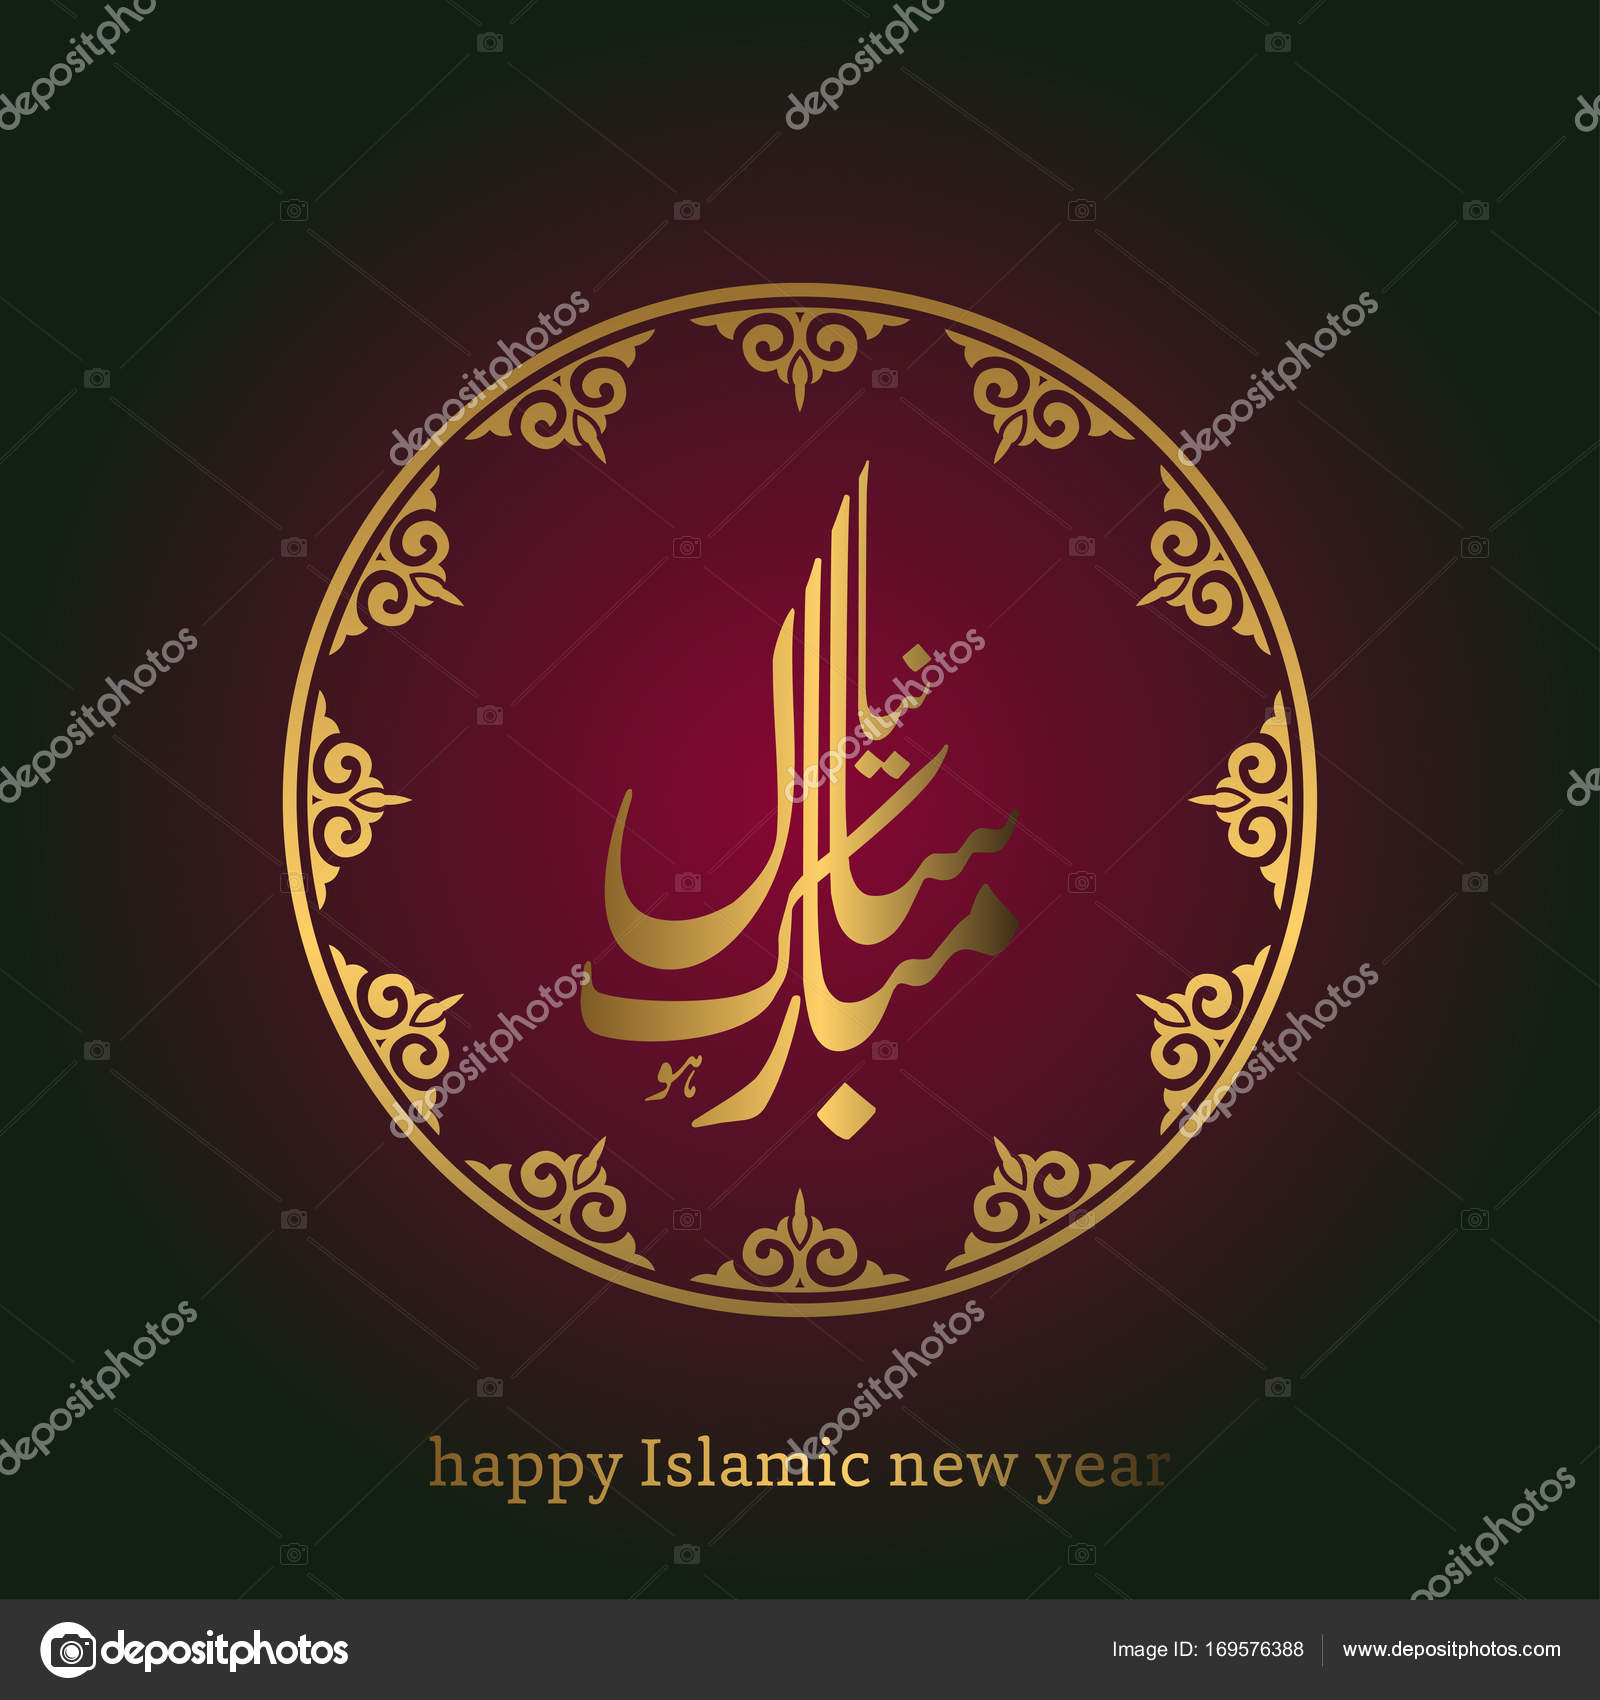 Greeting card for islamic new year stock vector ibrandify 169576388 greeting card for islamic new year stock vector m4hsunfo